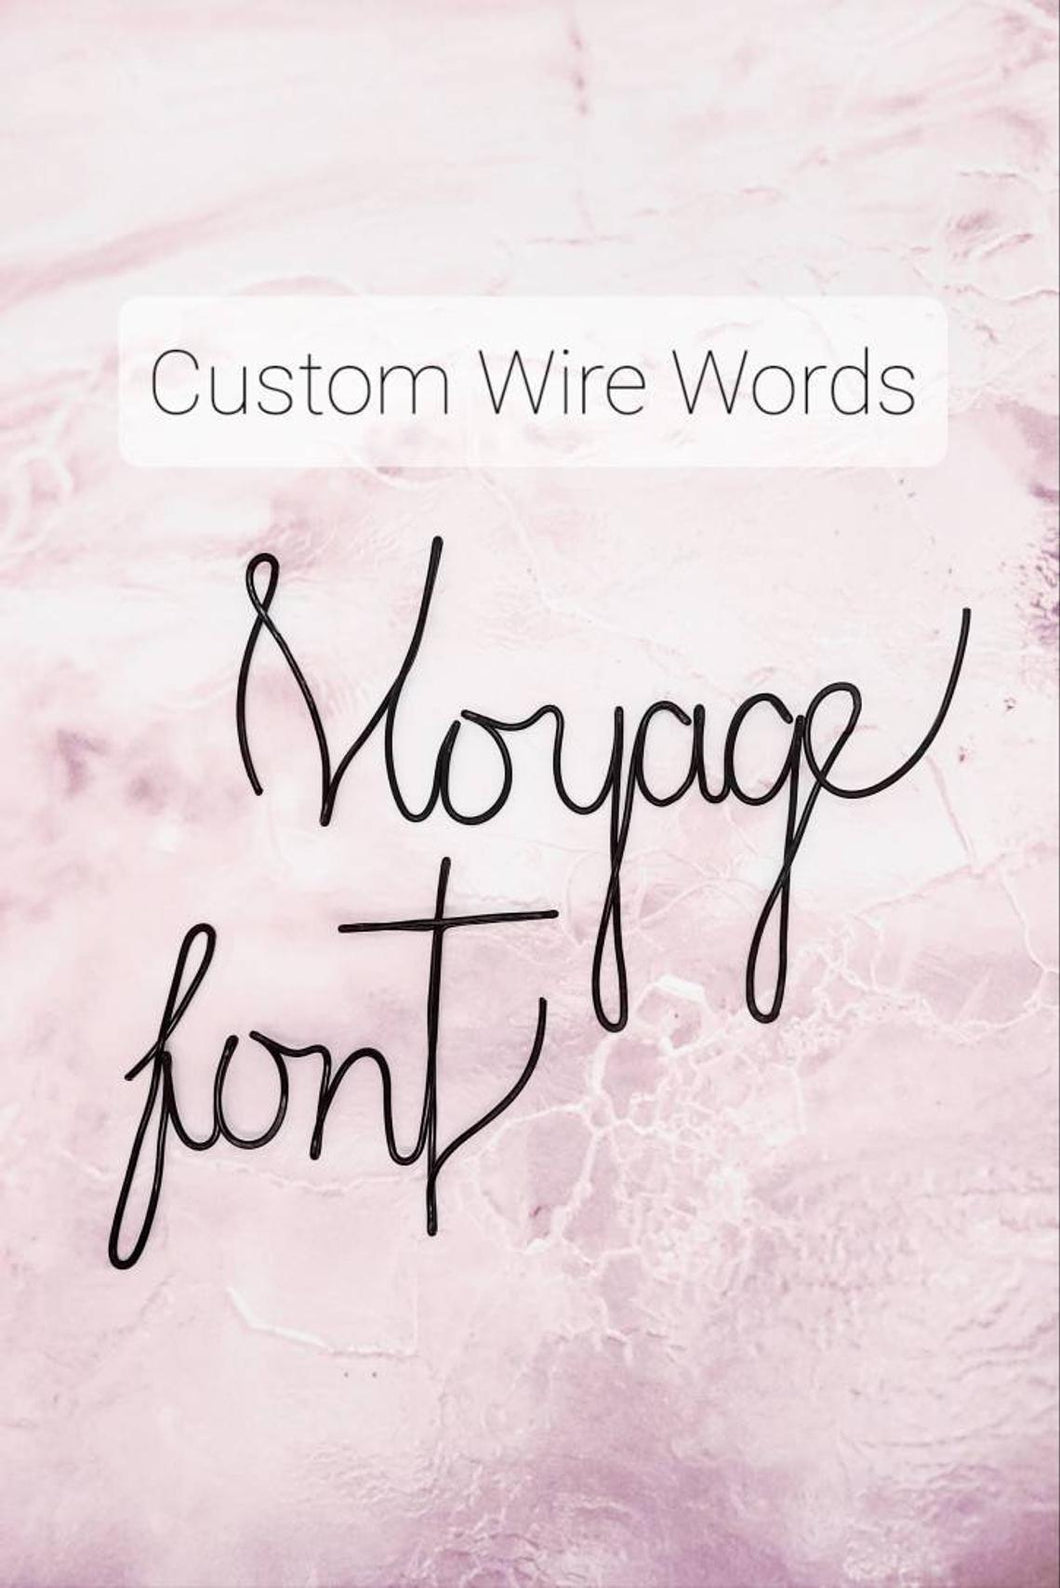 Custom Wire Wall Words, Voyage Font